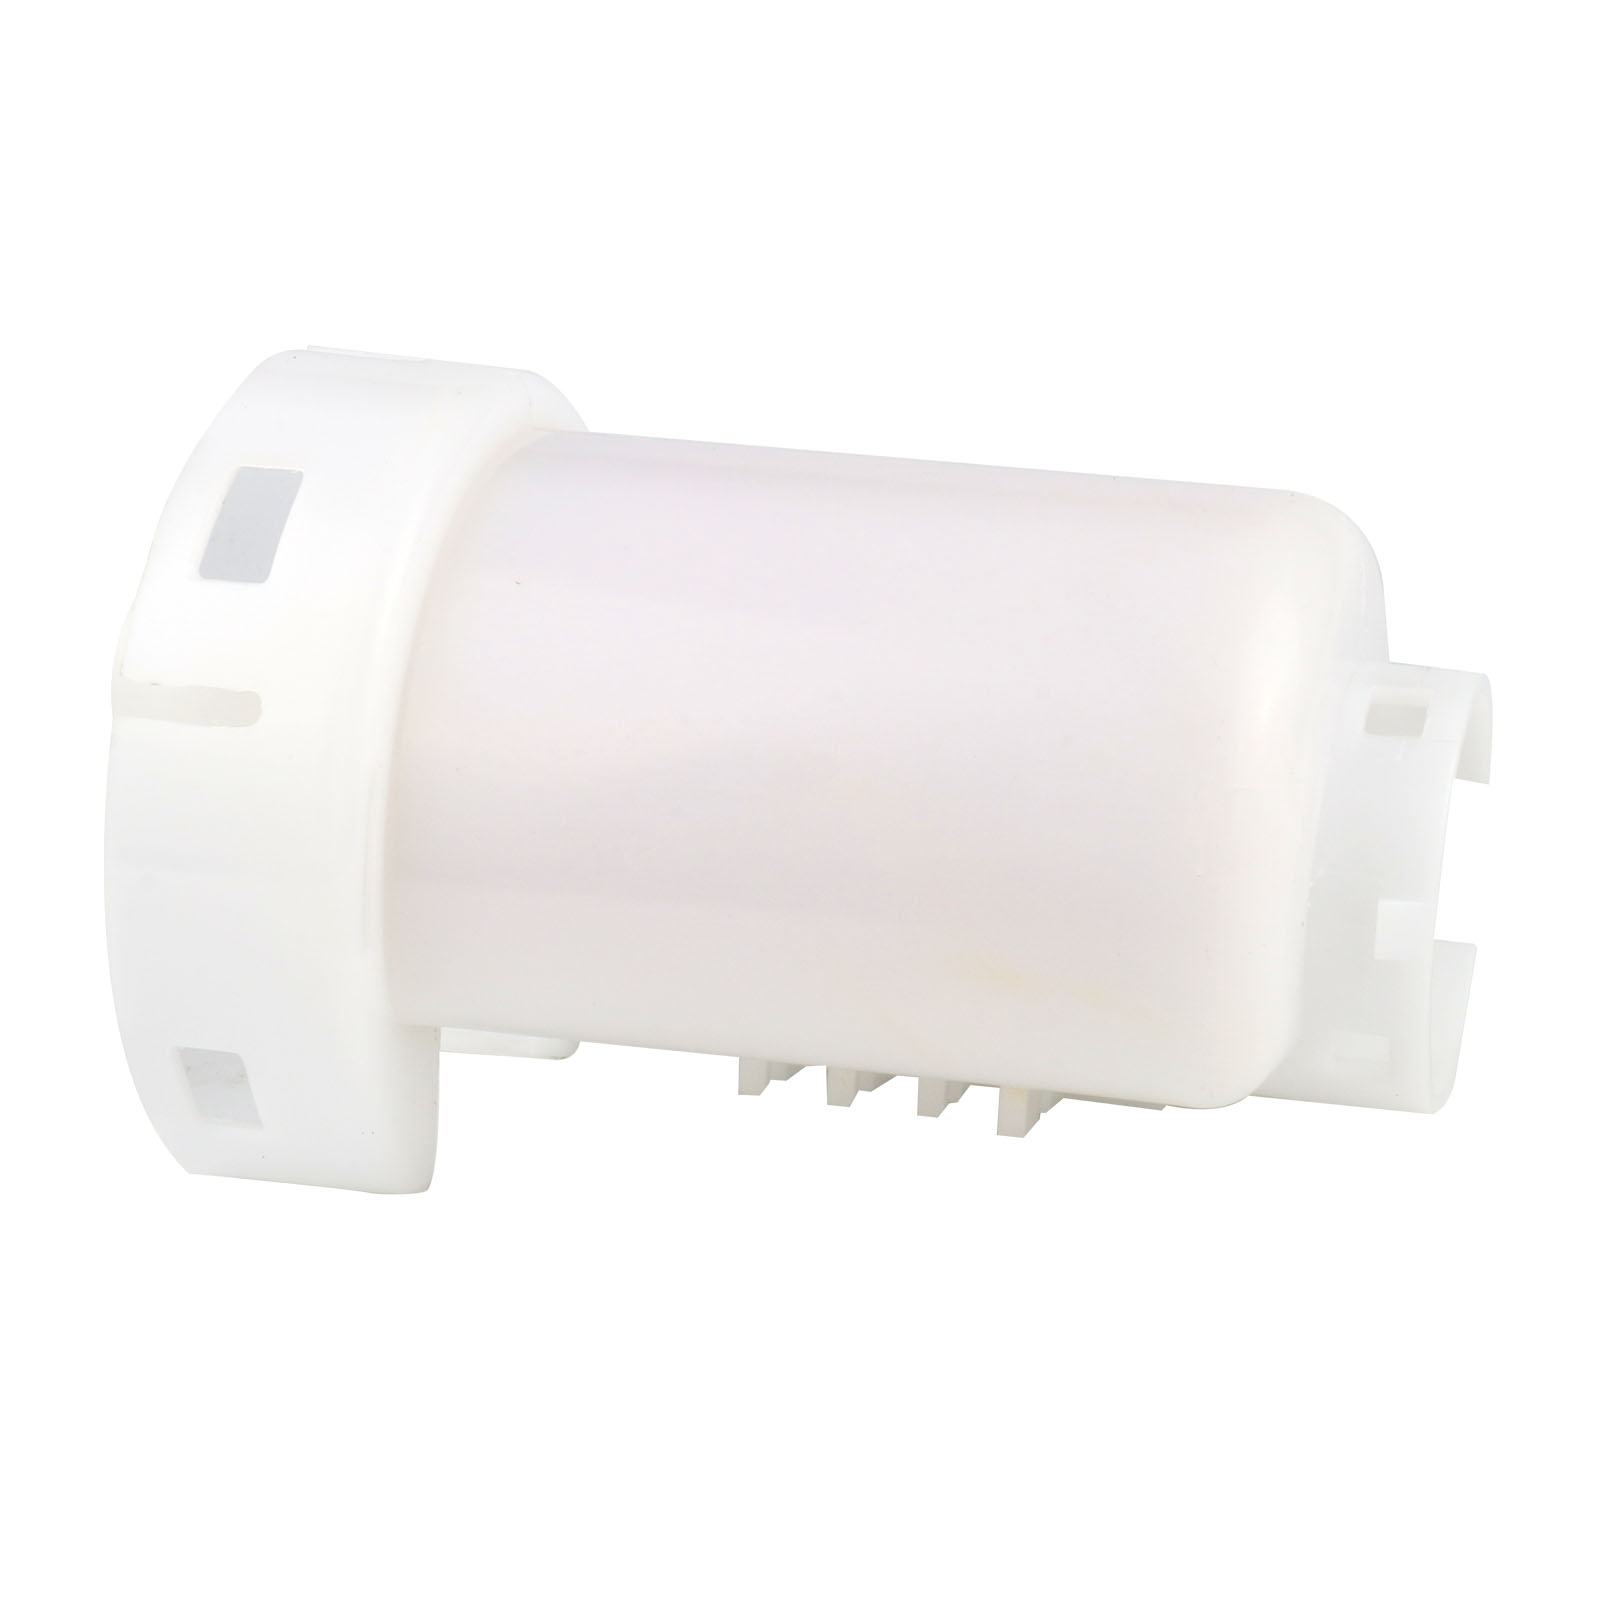 medium resolution of car gas gasoline petrol fuel filter oe 23300 23040 replacement parts for toyota daihatsu charade faw